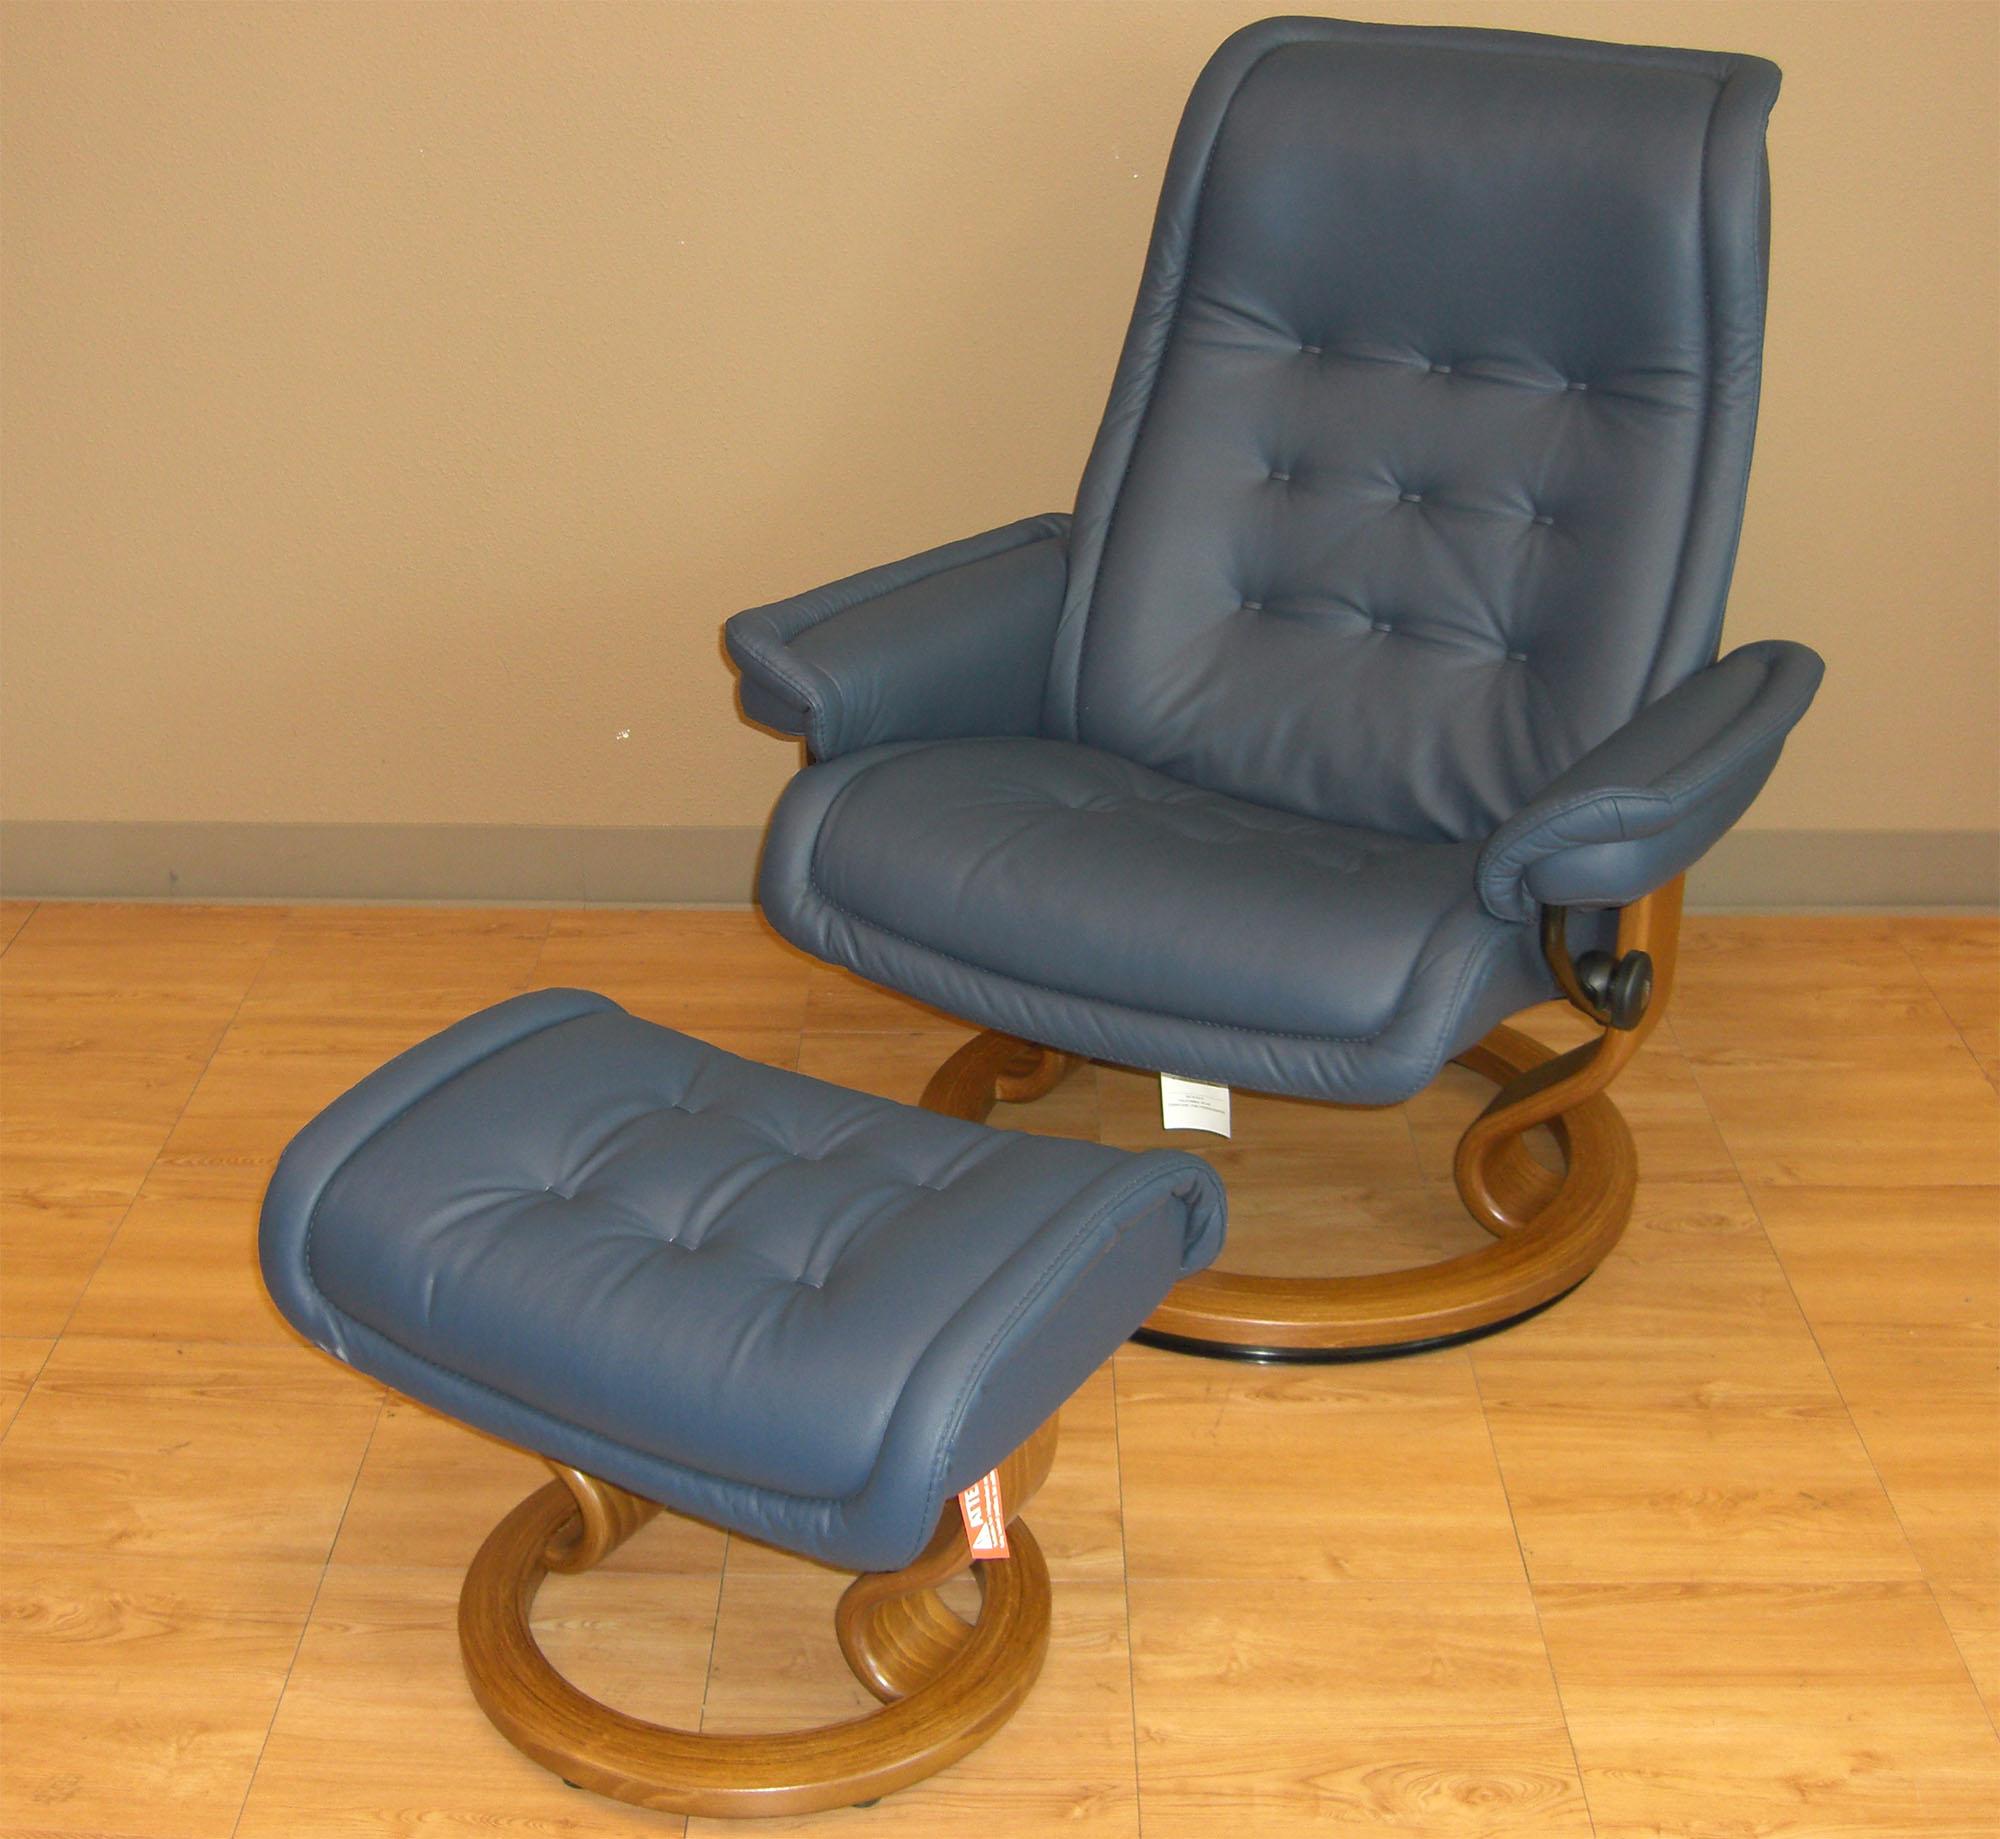 Stressless Paloma Royal Oxford Blue Leather Color Recliner Chair And  Ottoman From Ekornes